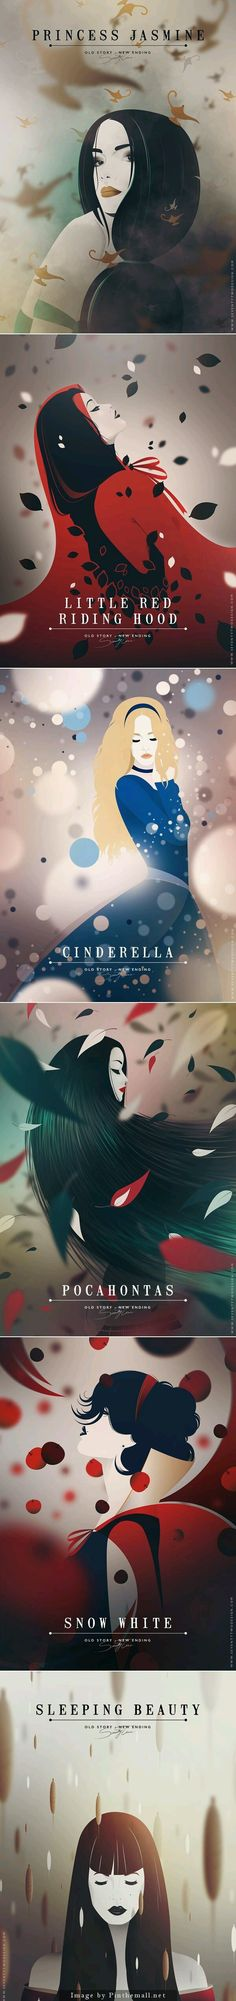 Fan Art: Disney princesses.